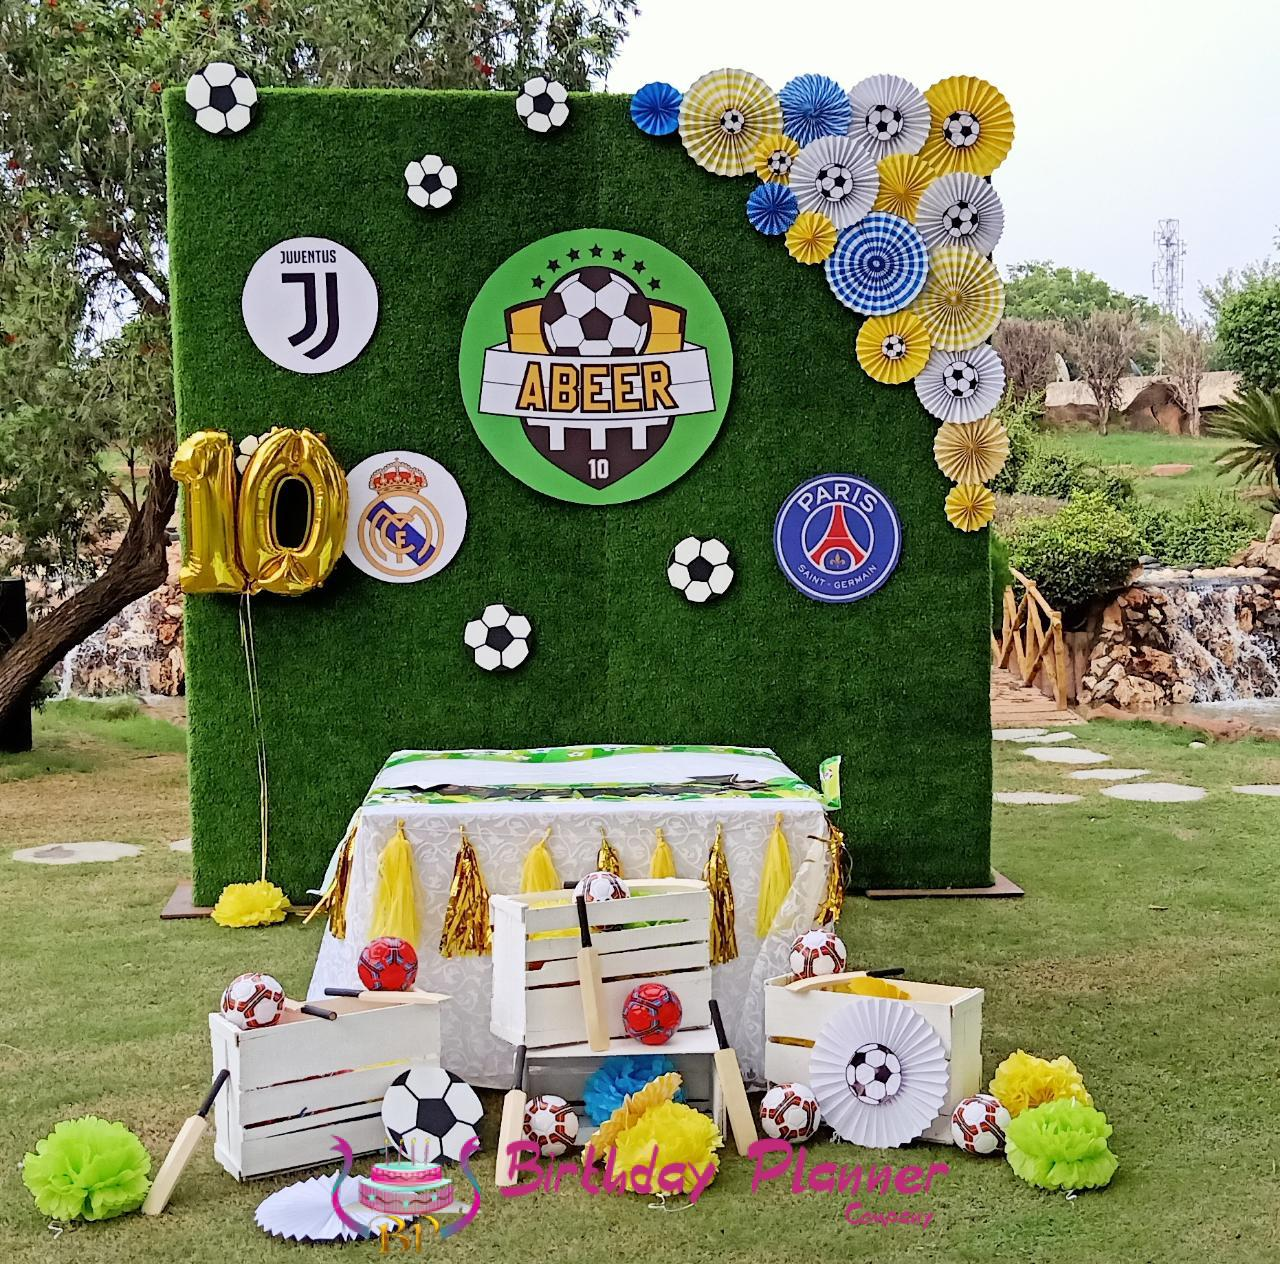 Enjoy a thematic birthday party of your junior kid with us to the fullest